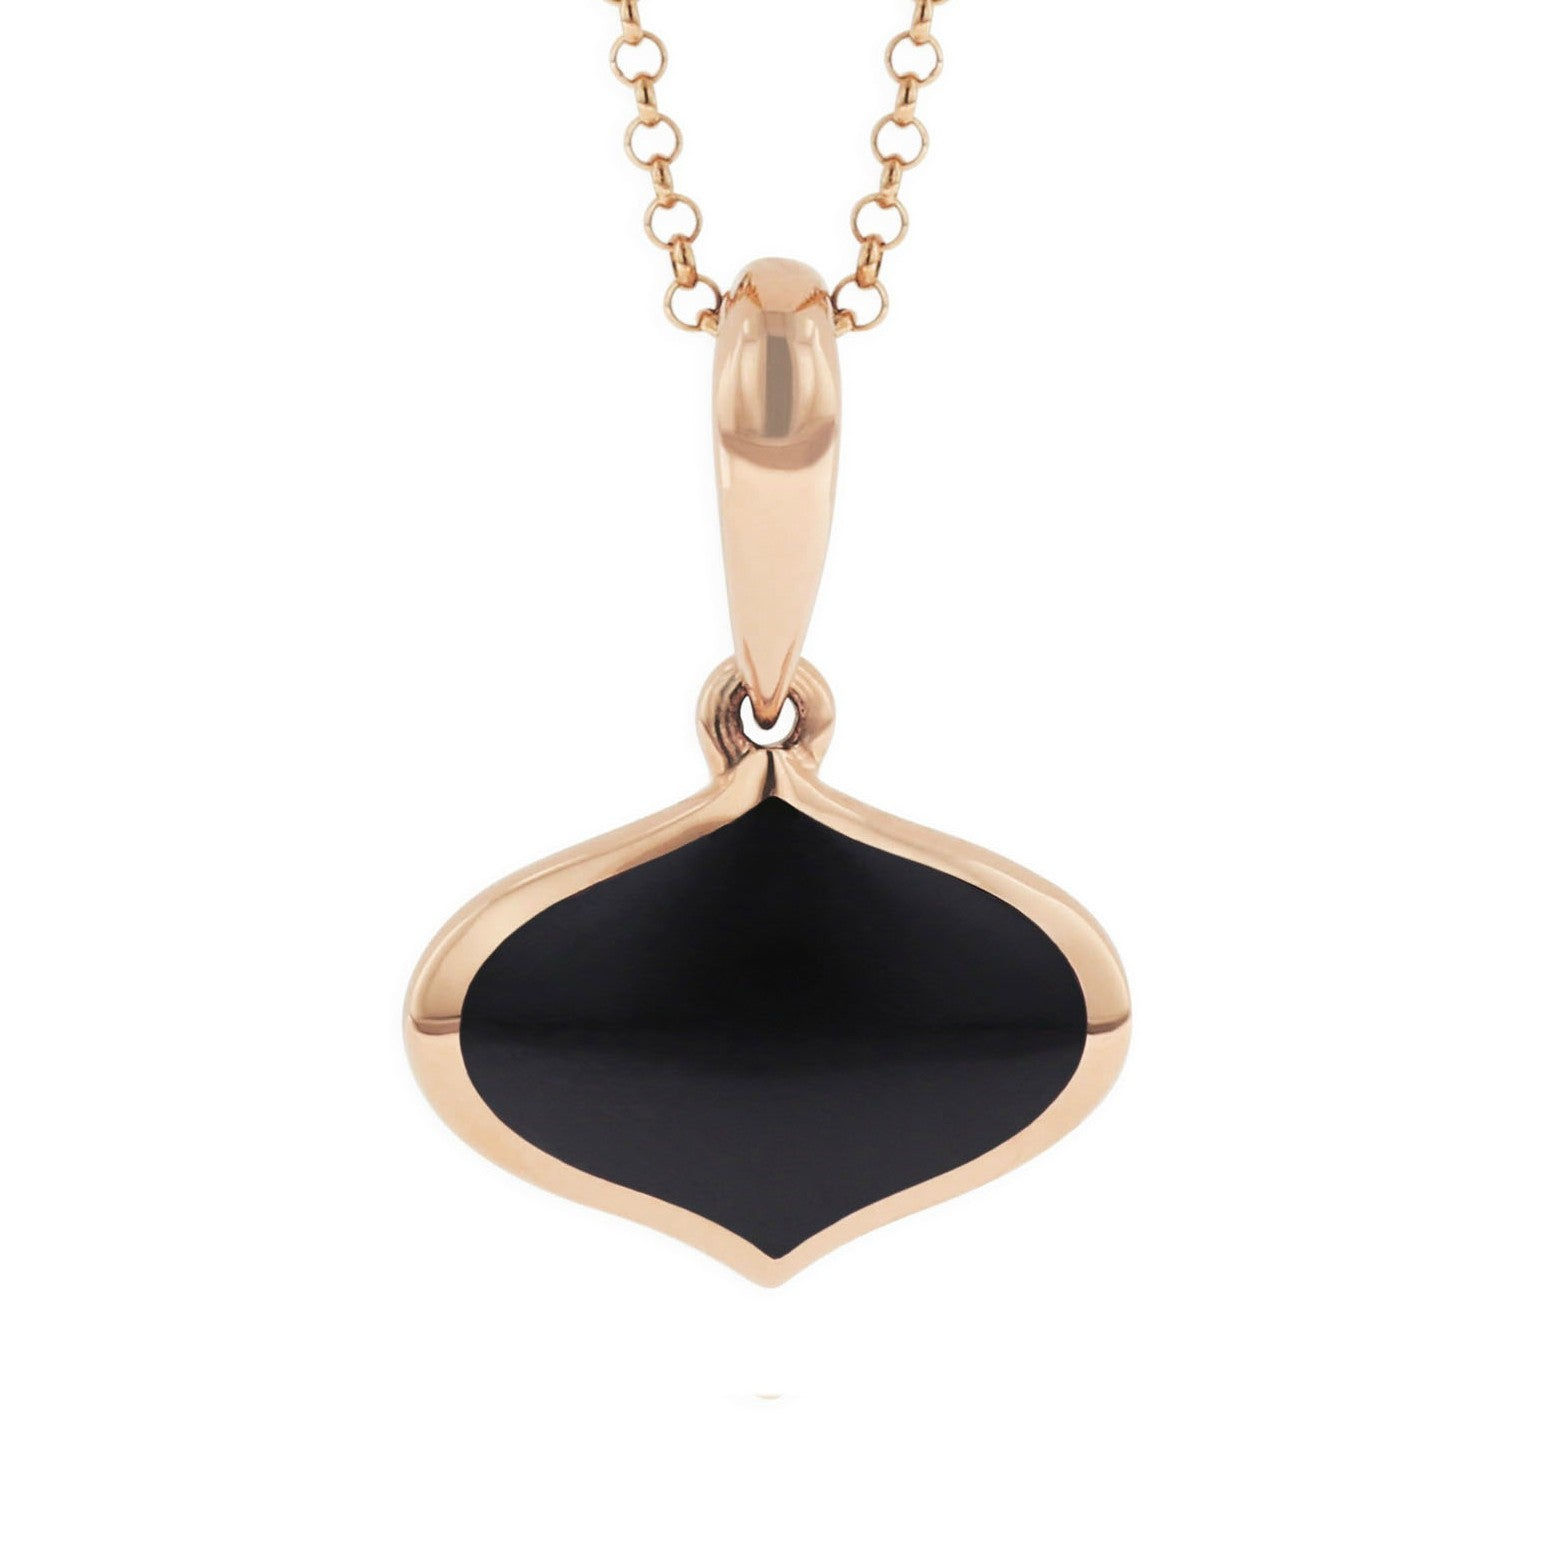 Kabana Onyx Pendant Necklace in Rose Gold Brent L Miller